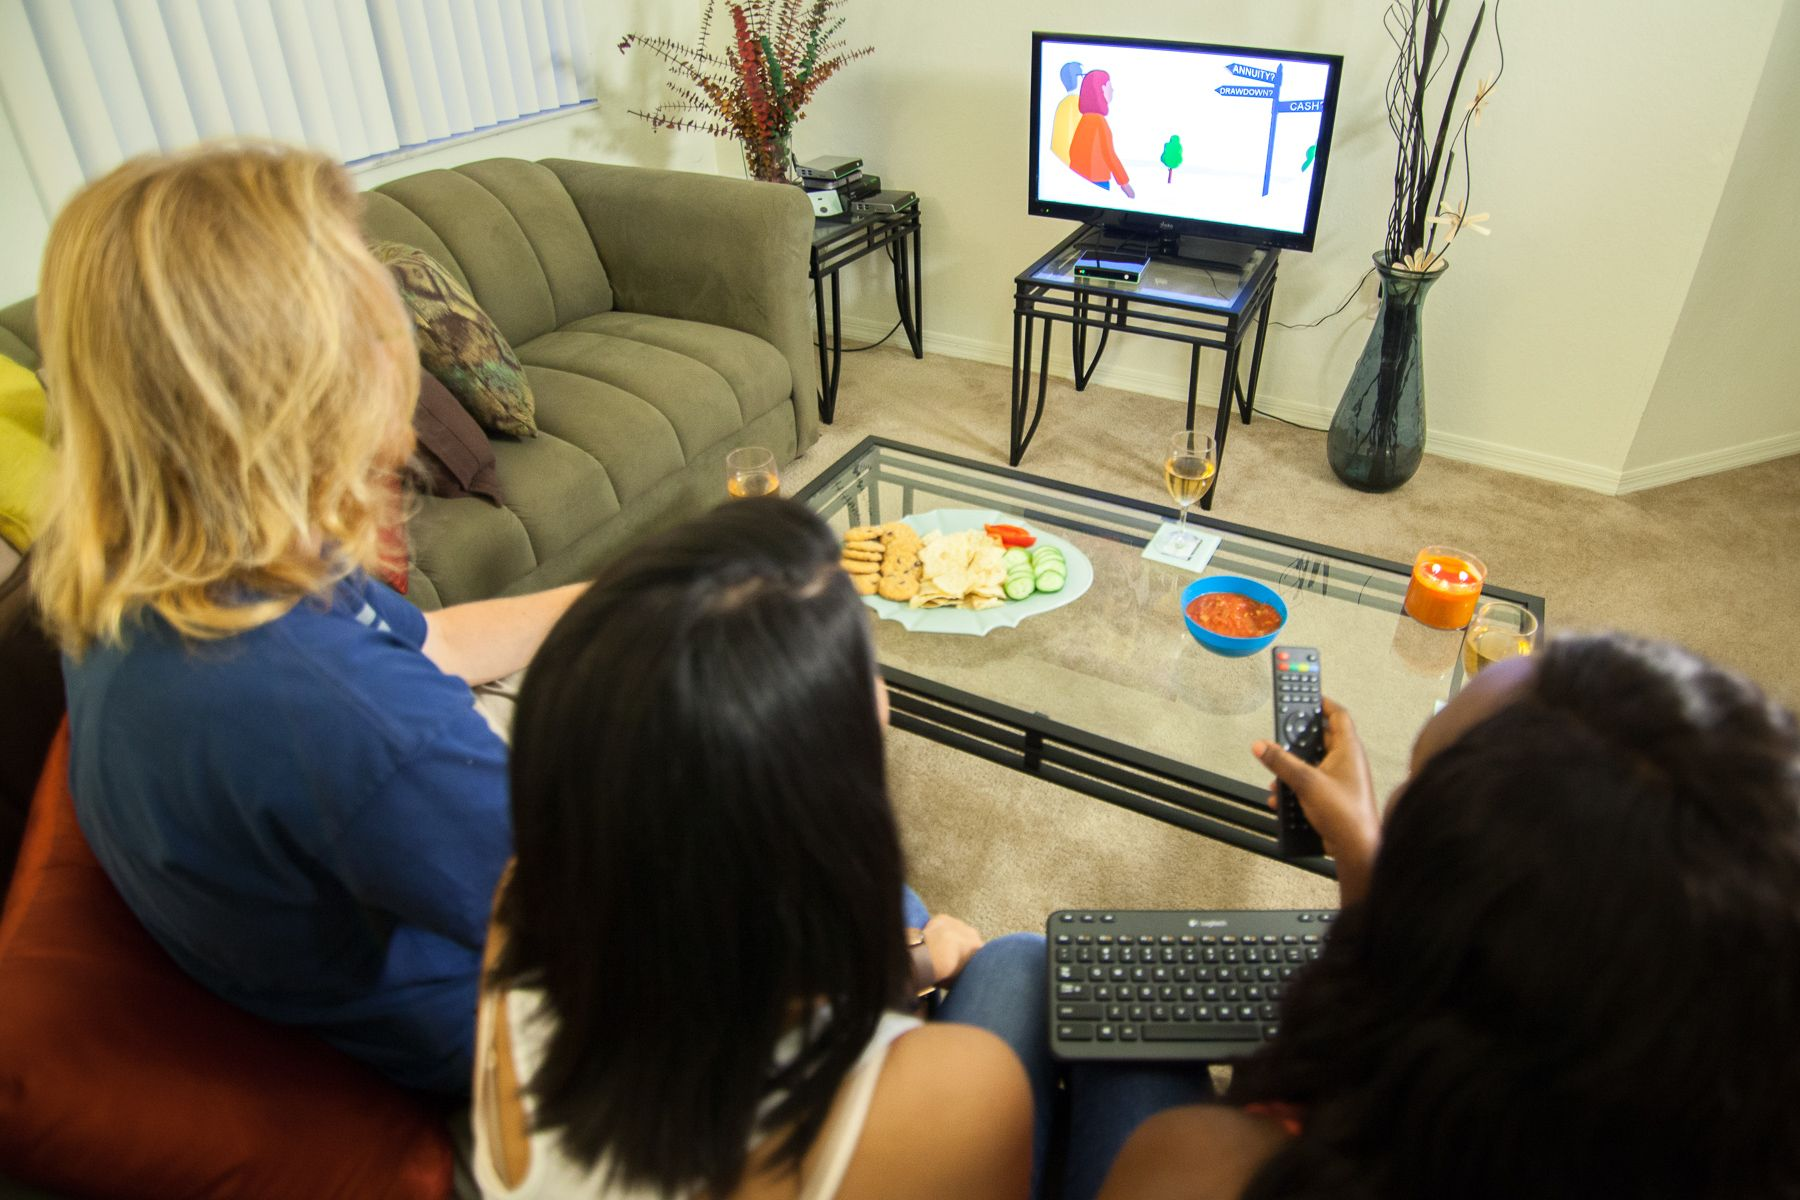 ‎Wahltv‬ allow people to watch live TV worldwide on all electronic devices through the internet. For Details Check kck.st/1Leh09W